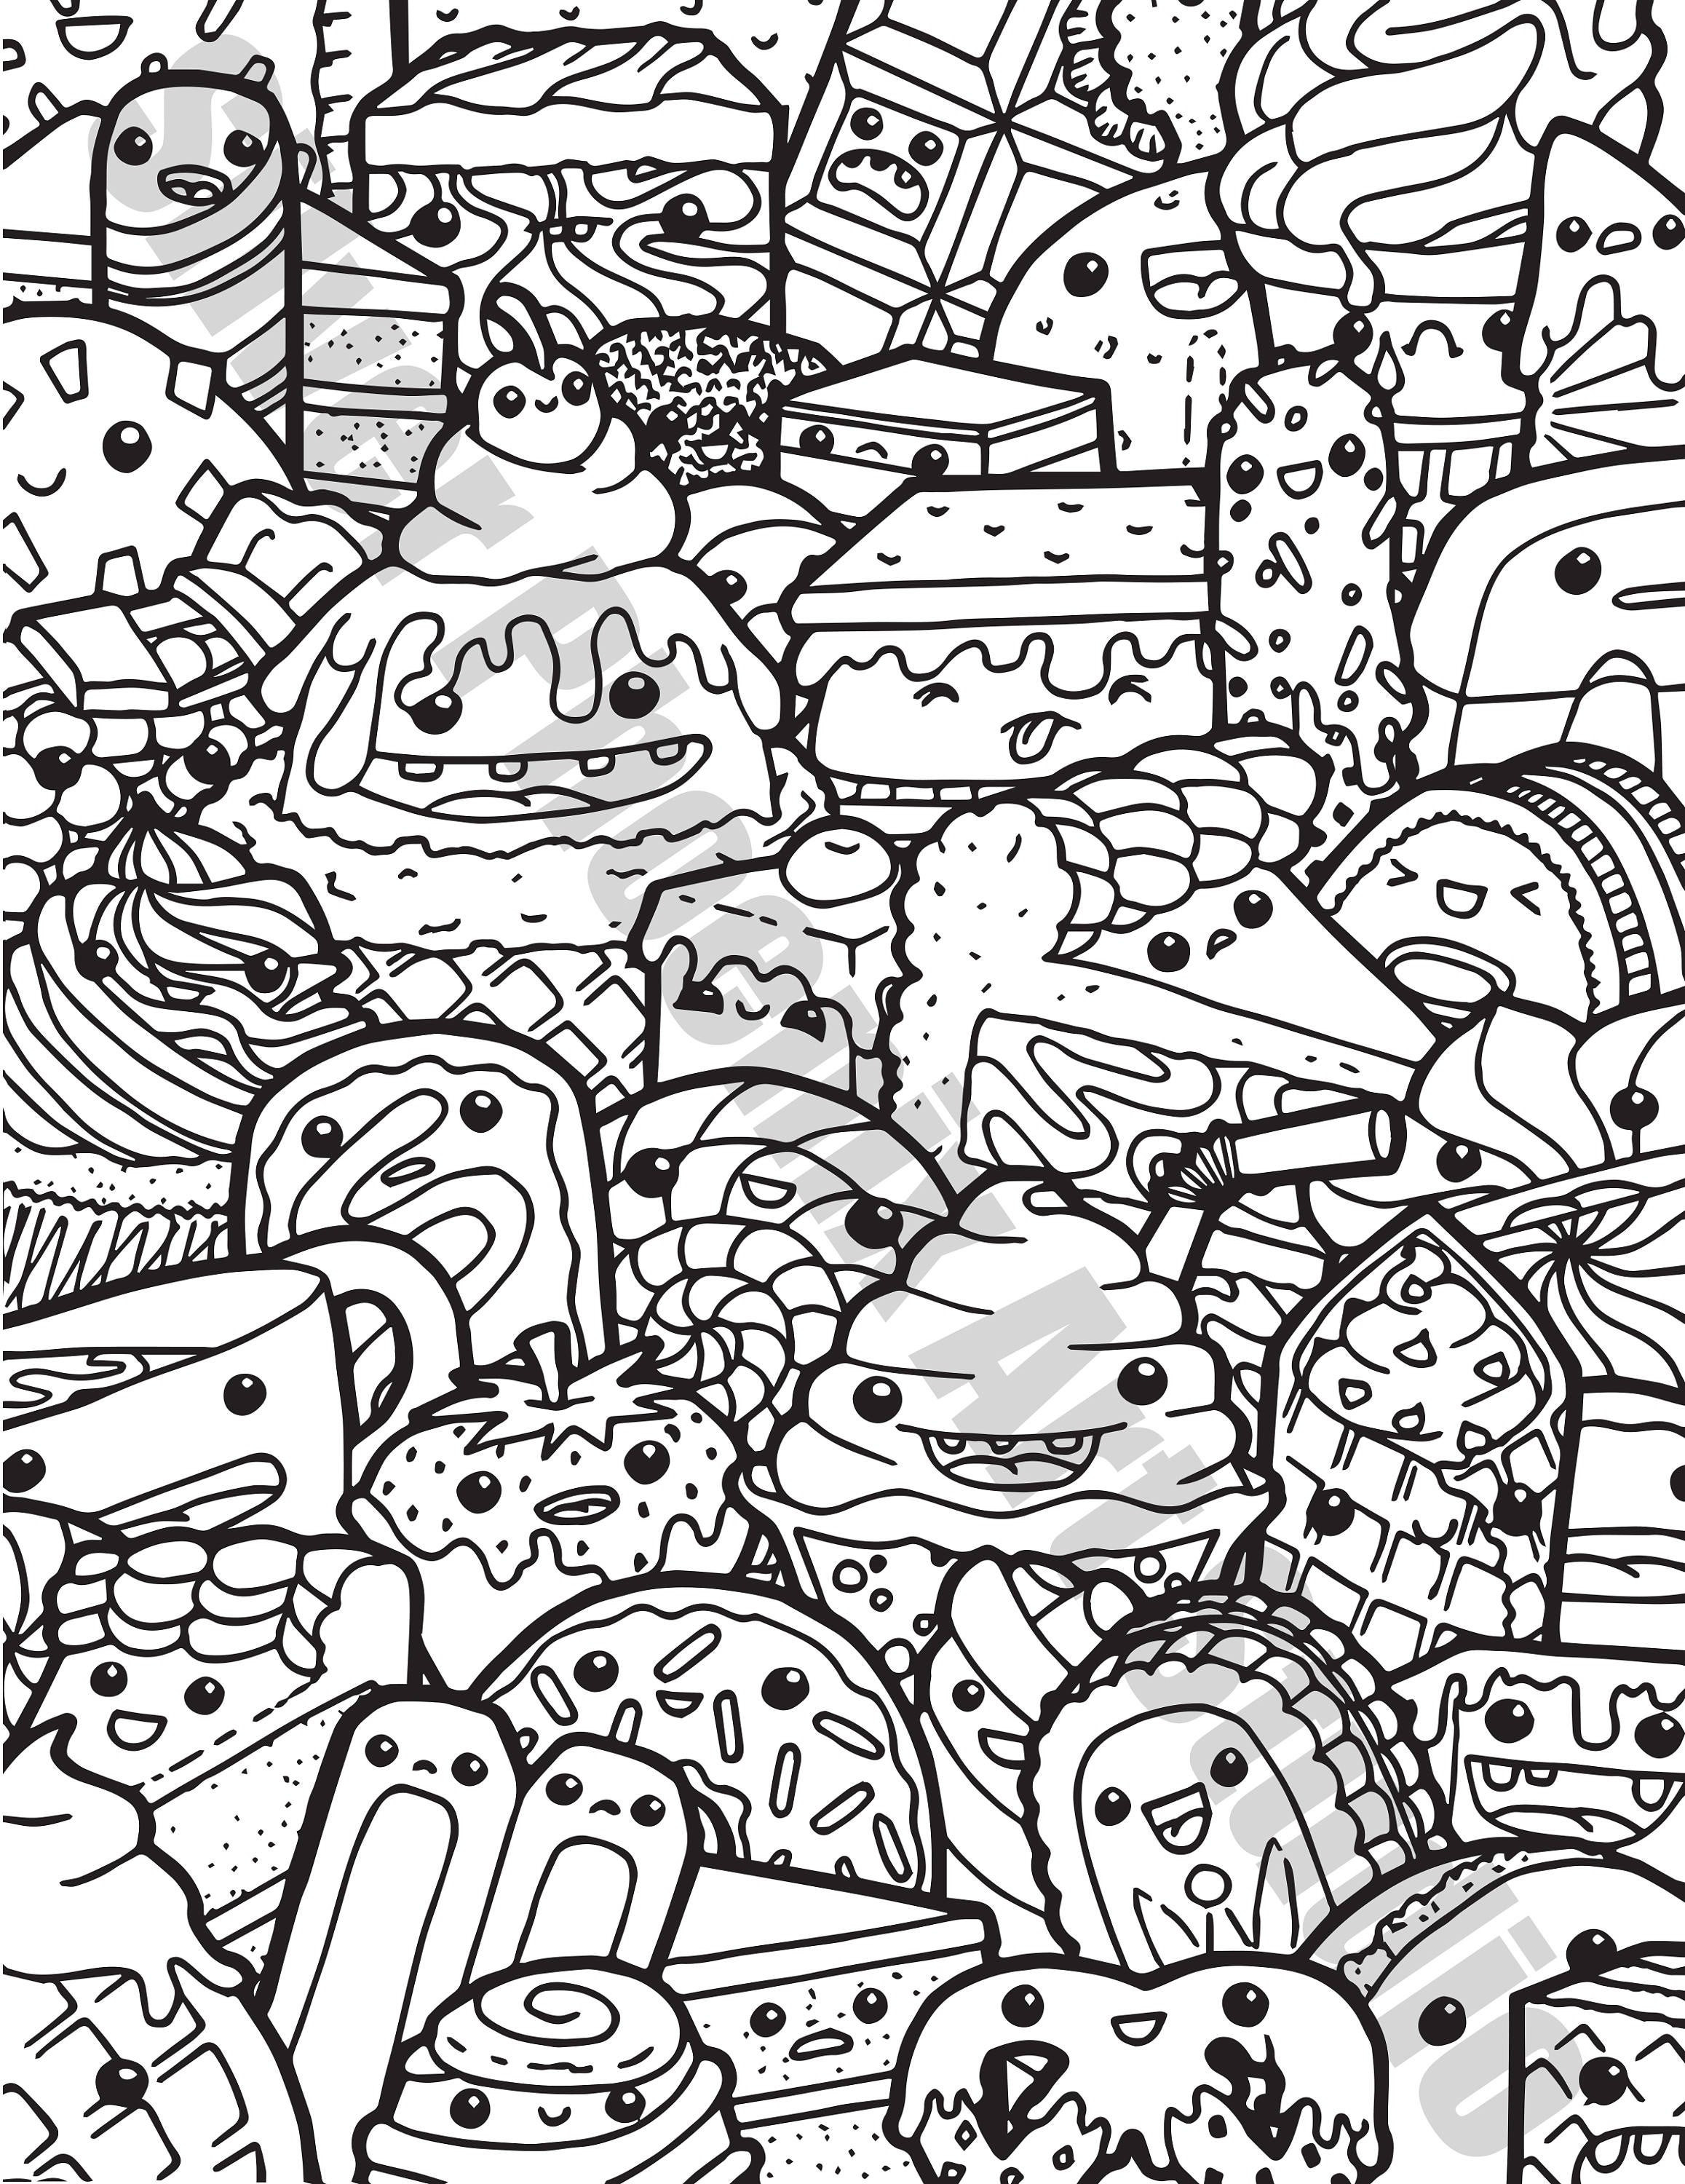 Cute Coloring Pages For Adults  Kawaii Sweets Doodle Adult Coloring Page Printable Digital